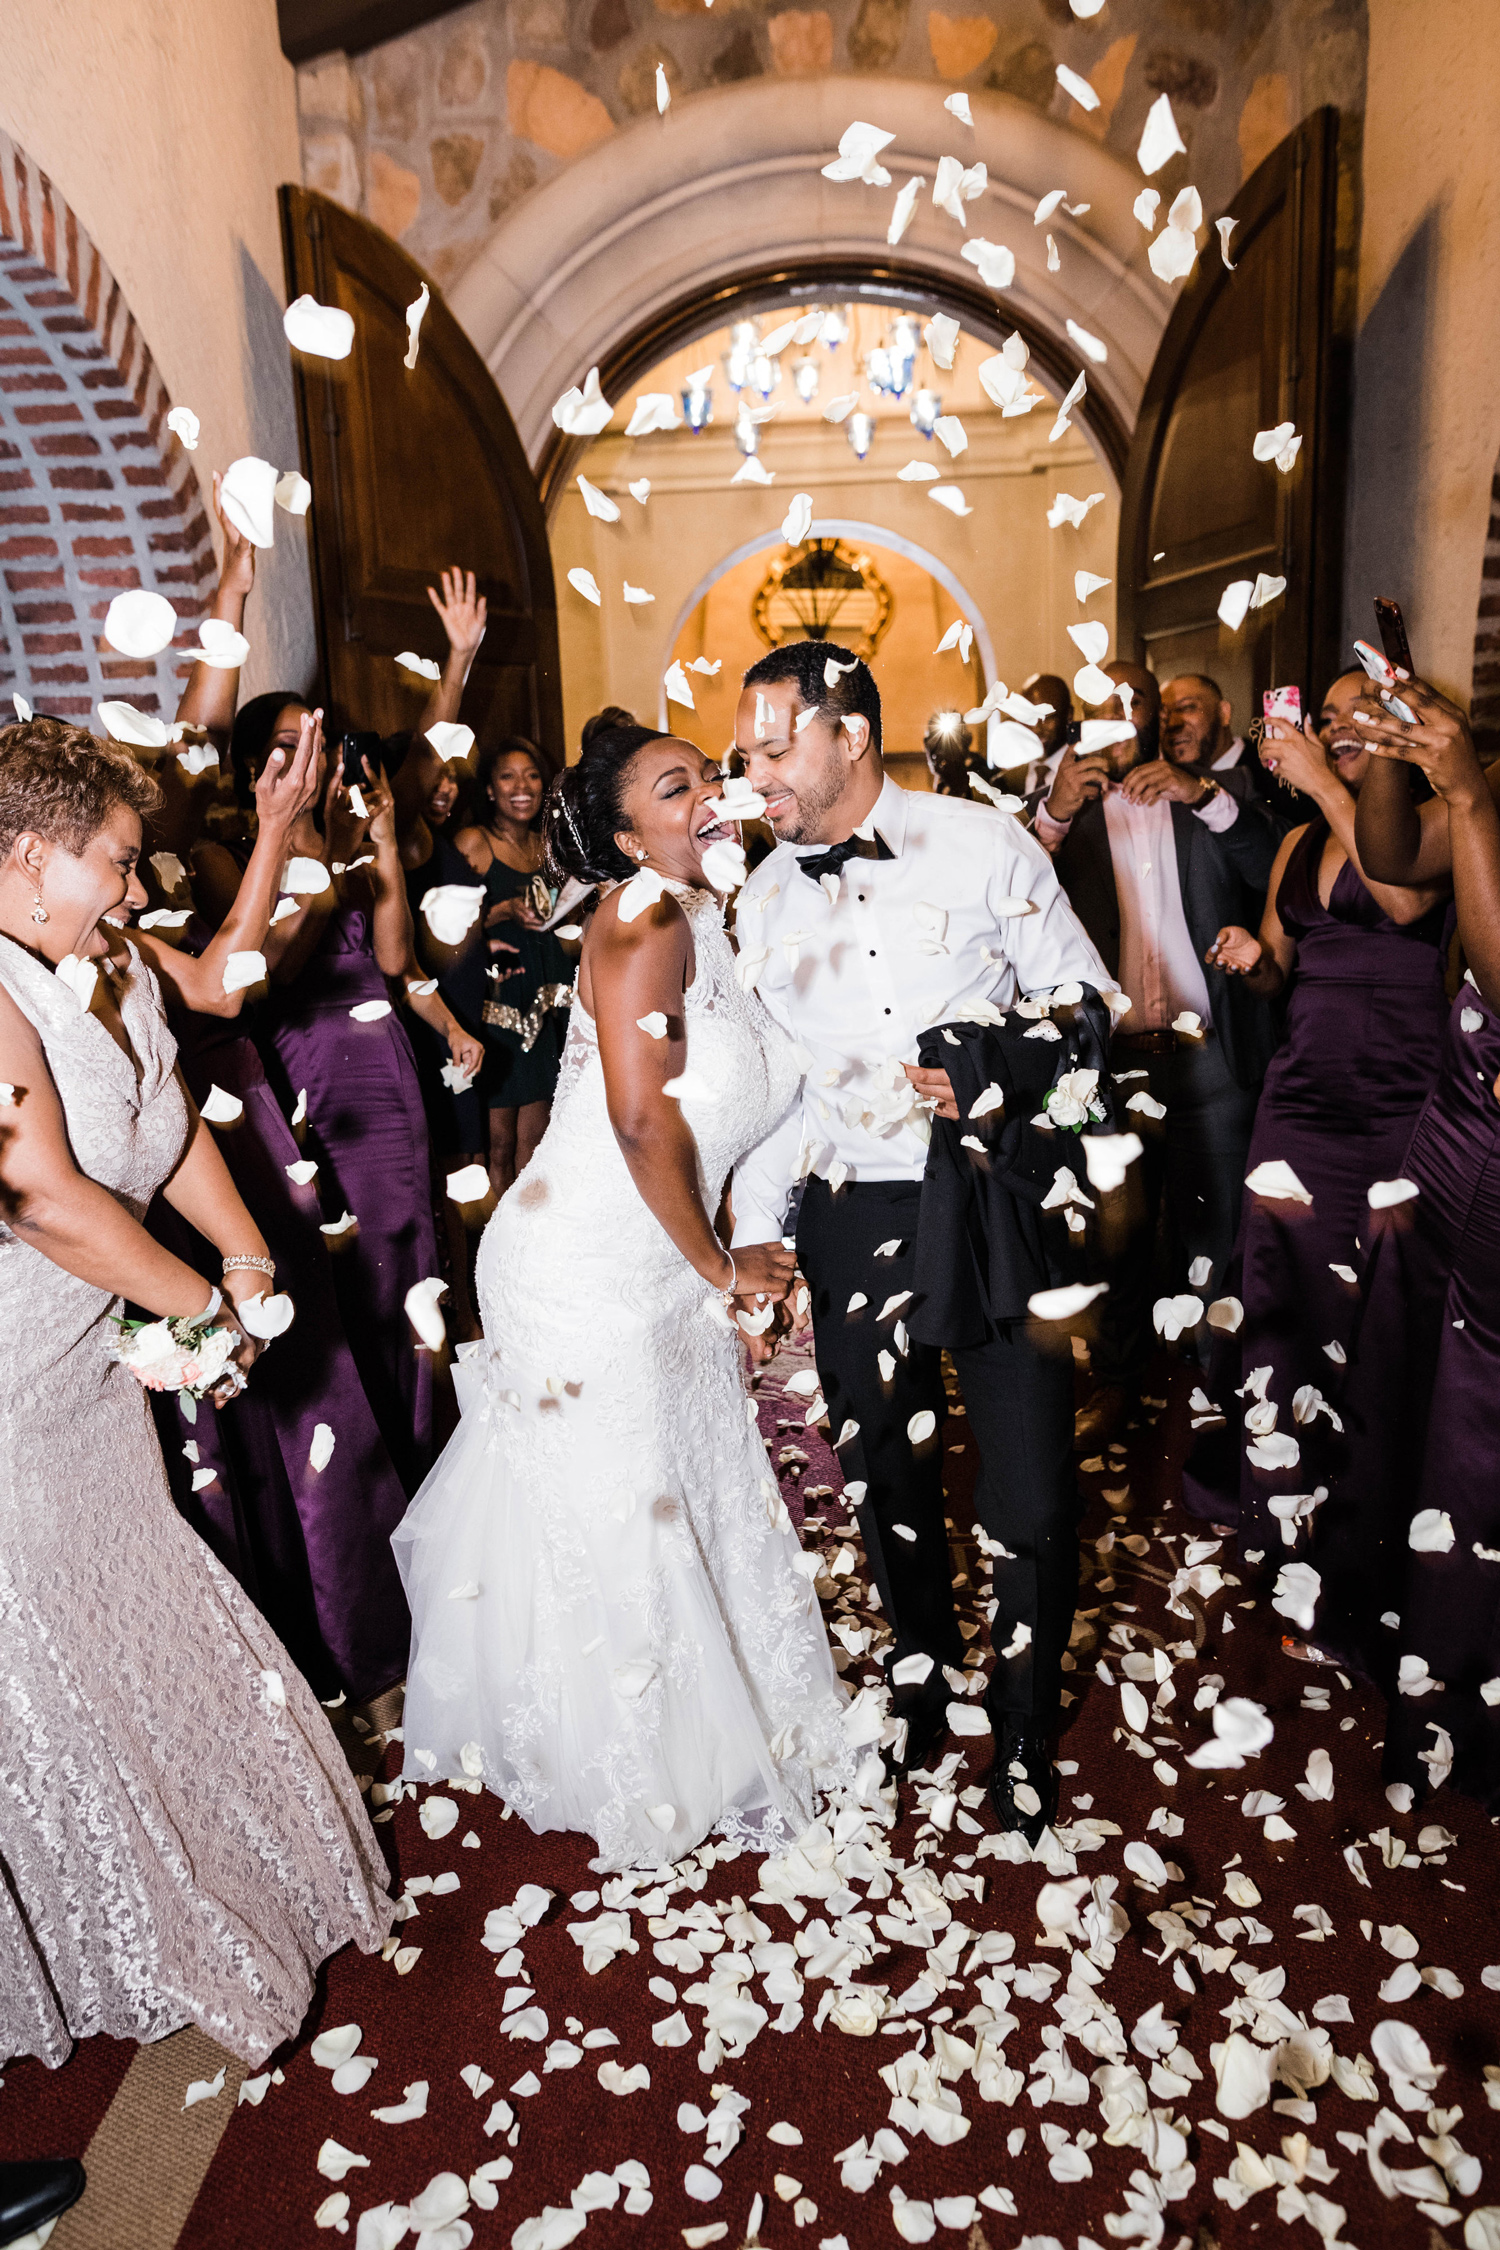 bride and groom showered with flower petals by guests